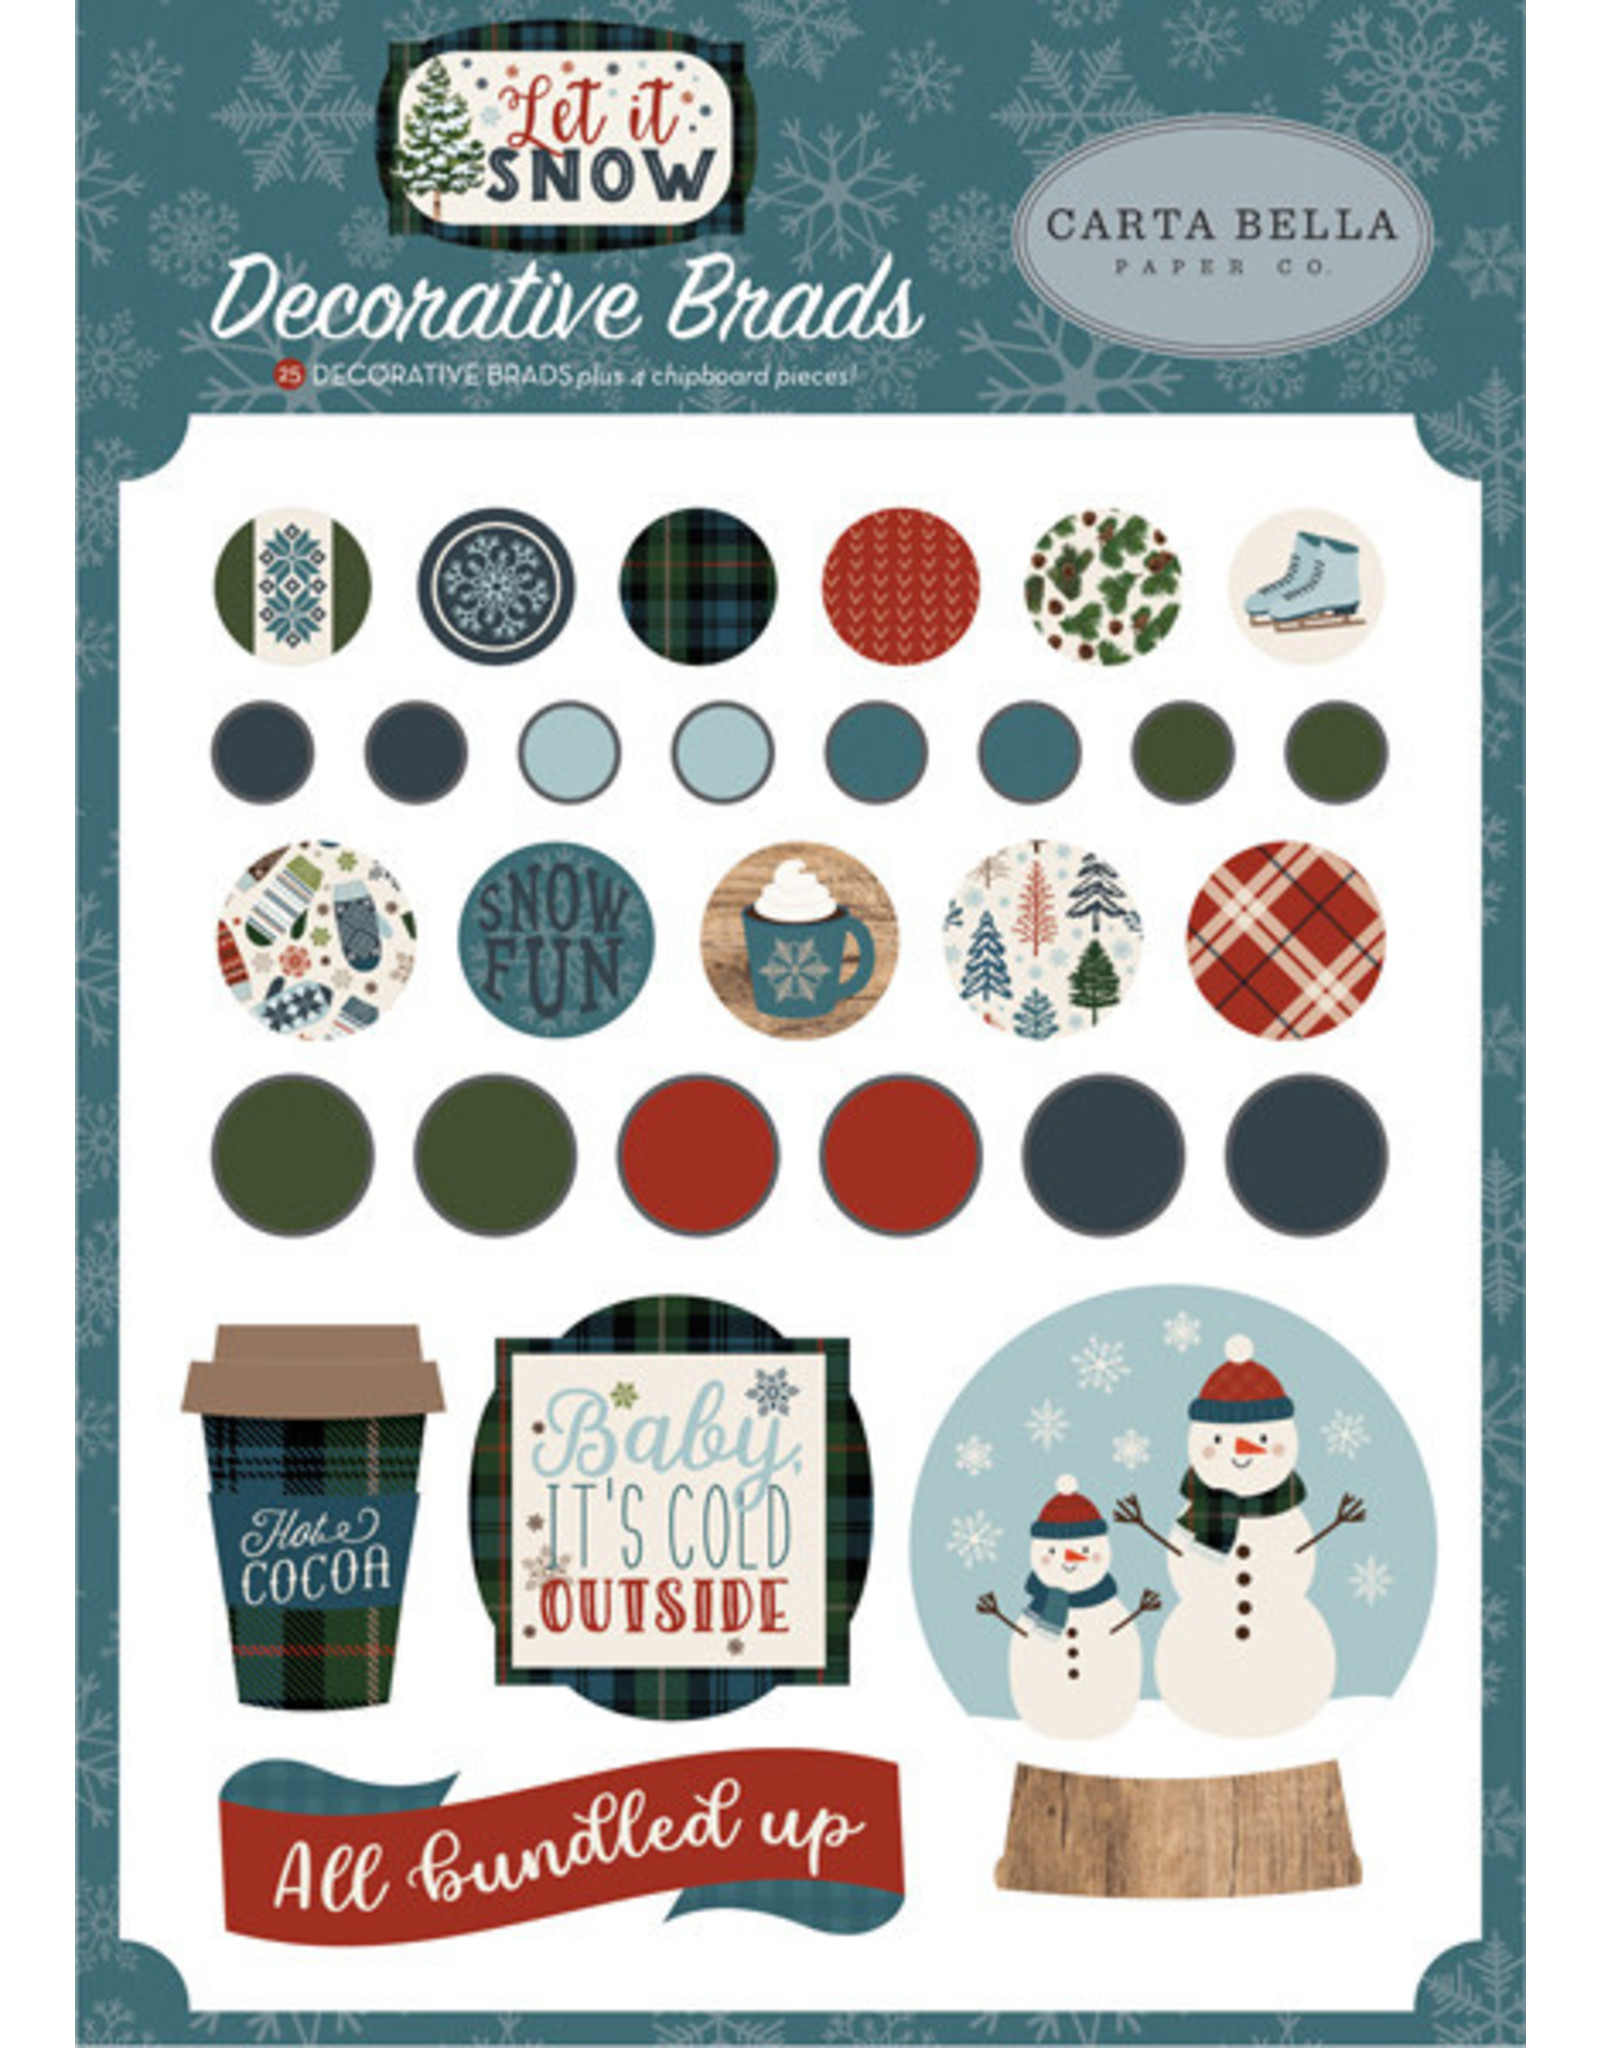 Echo Park Let it Snow - Decorative Brads (40%)